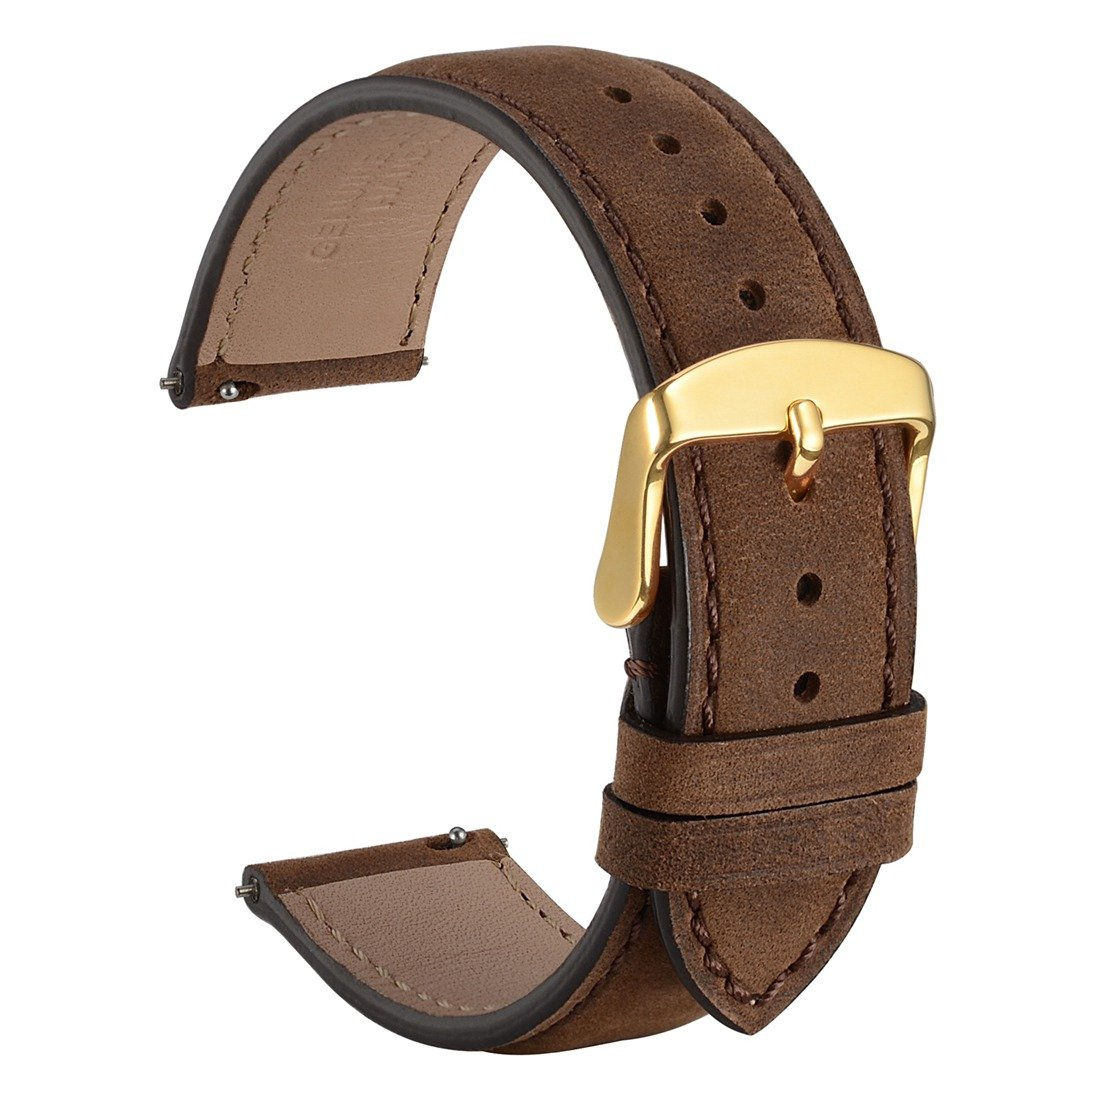 WOCCI 18mm Suede Vintage Leather Watch Band with Gold Buckle, Quick Release Strap (Dark Brown with Tone on Tone Seam)